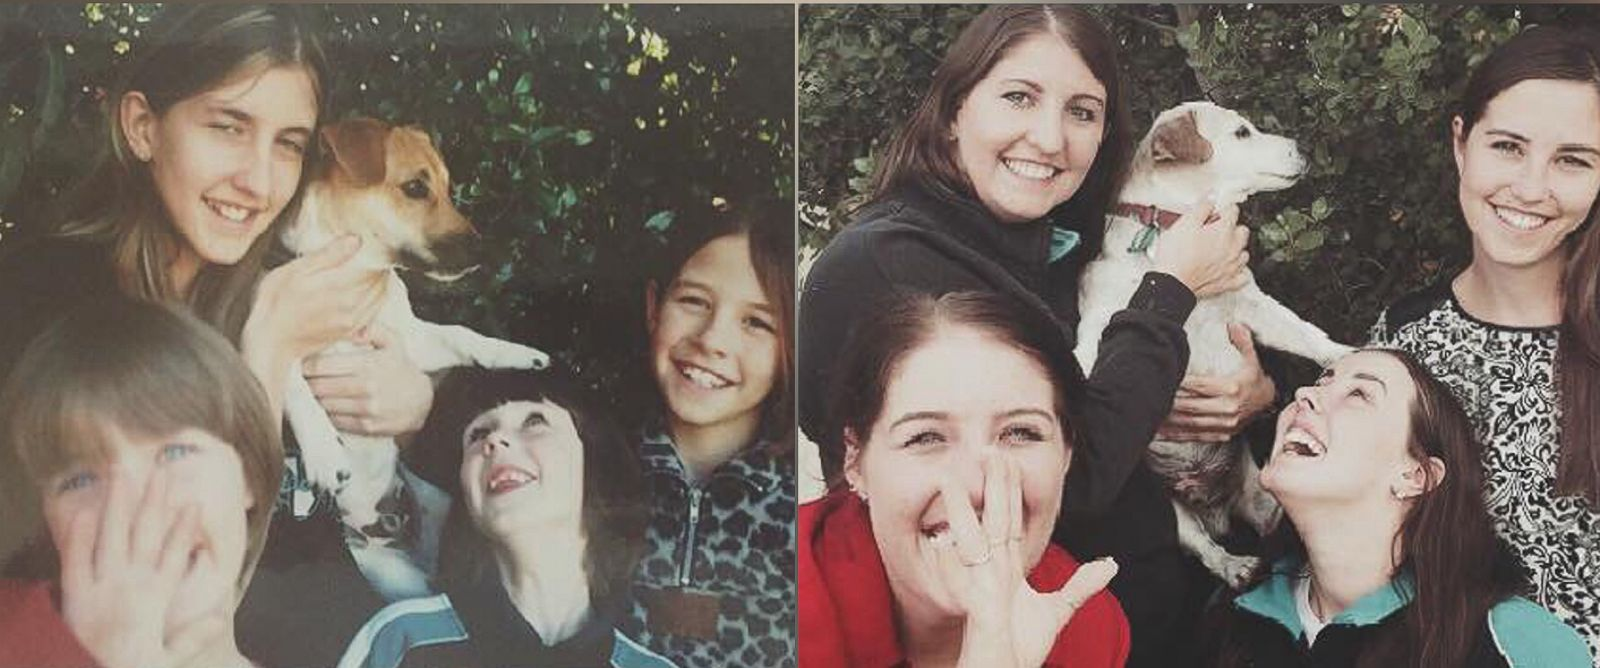 PHOTO: Four sisters from Adelaide, Australia, recreated a childhood photo with their beloved dog, Tigger, before he passed away.